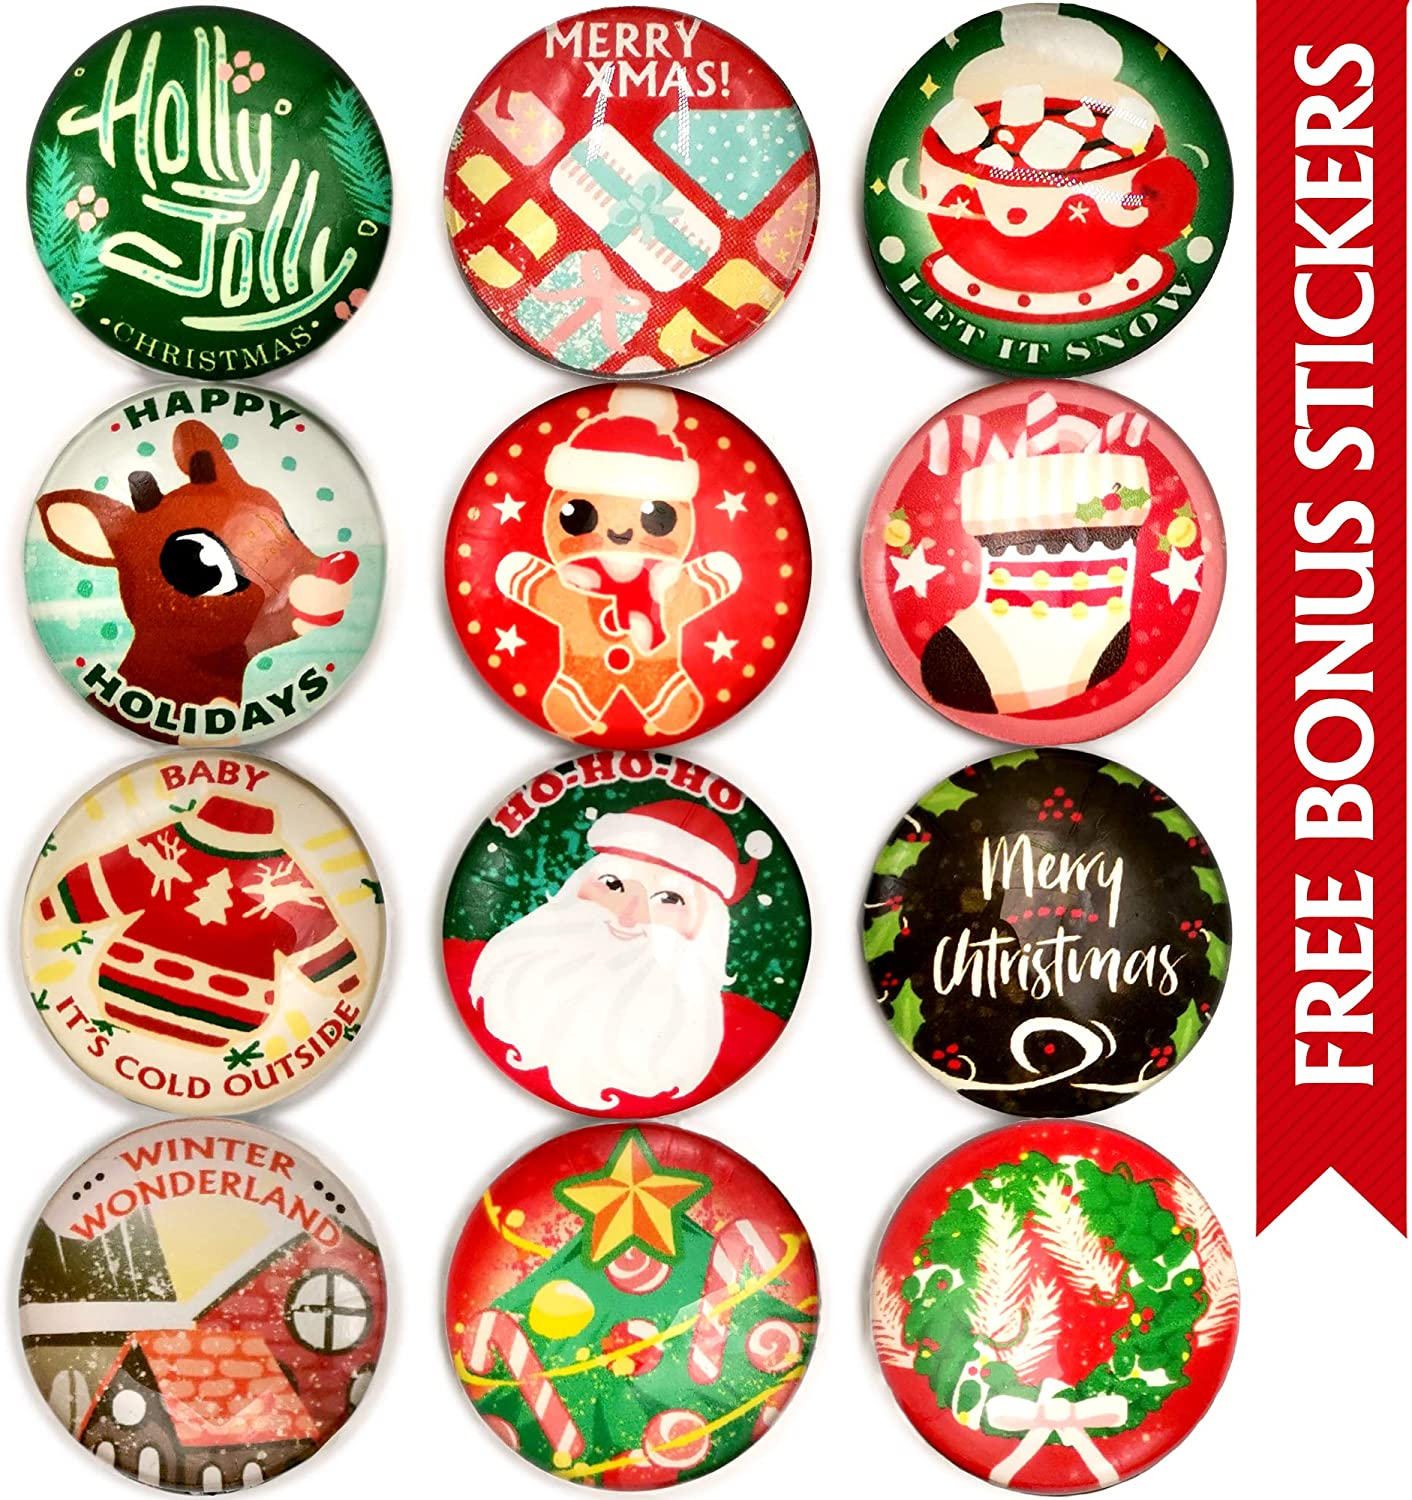 Christmas Magnets for Refrigerator 12pcs - Glass Fridge Magnets for Christmas Decoration Clearance - Christmas Ornaments for Kitchen, Home, Decor, Stickers - Funny Christmas Decoration Magnets